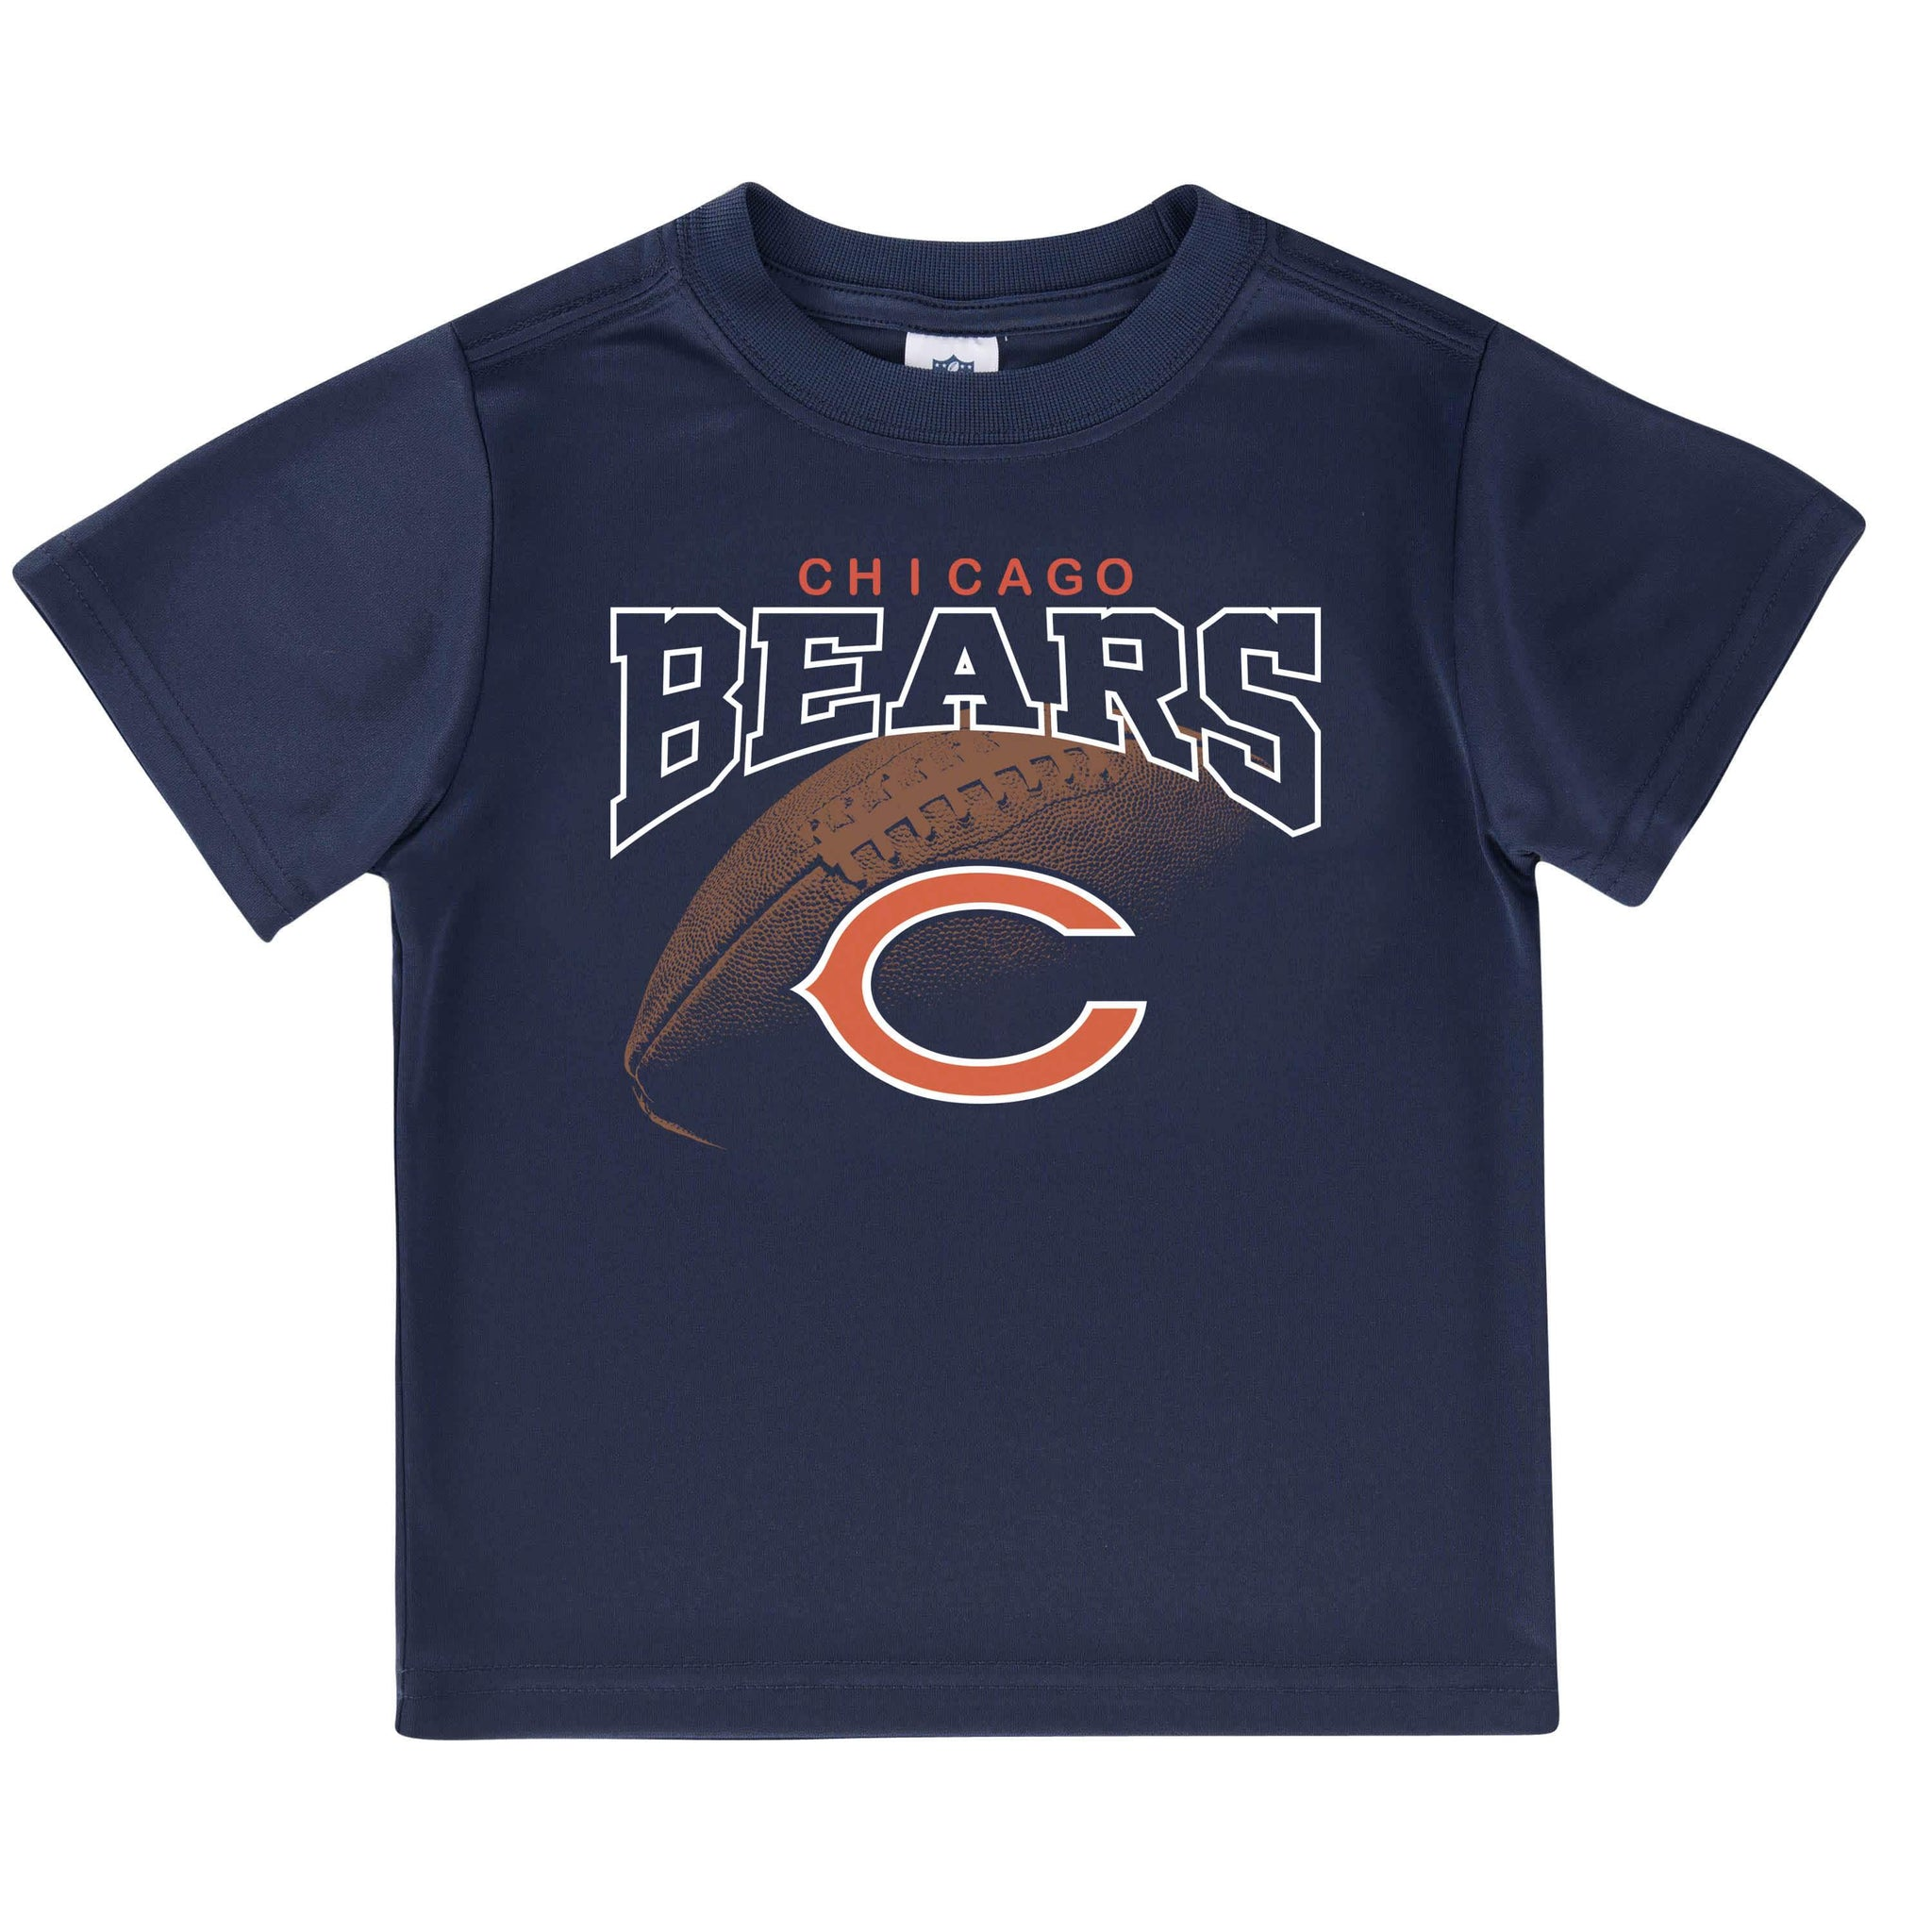 Chicago Bears Baby Boys Tee Shirt-Gerber Childrenswear